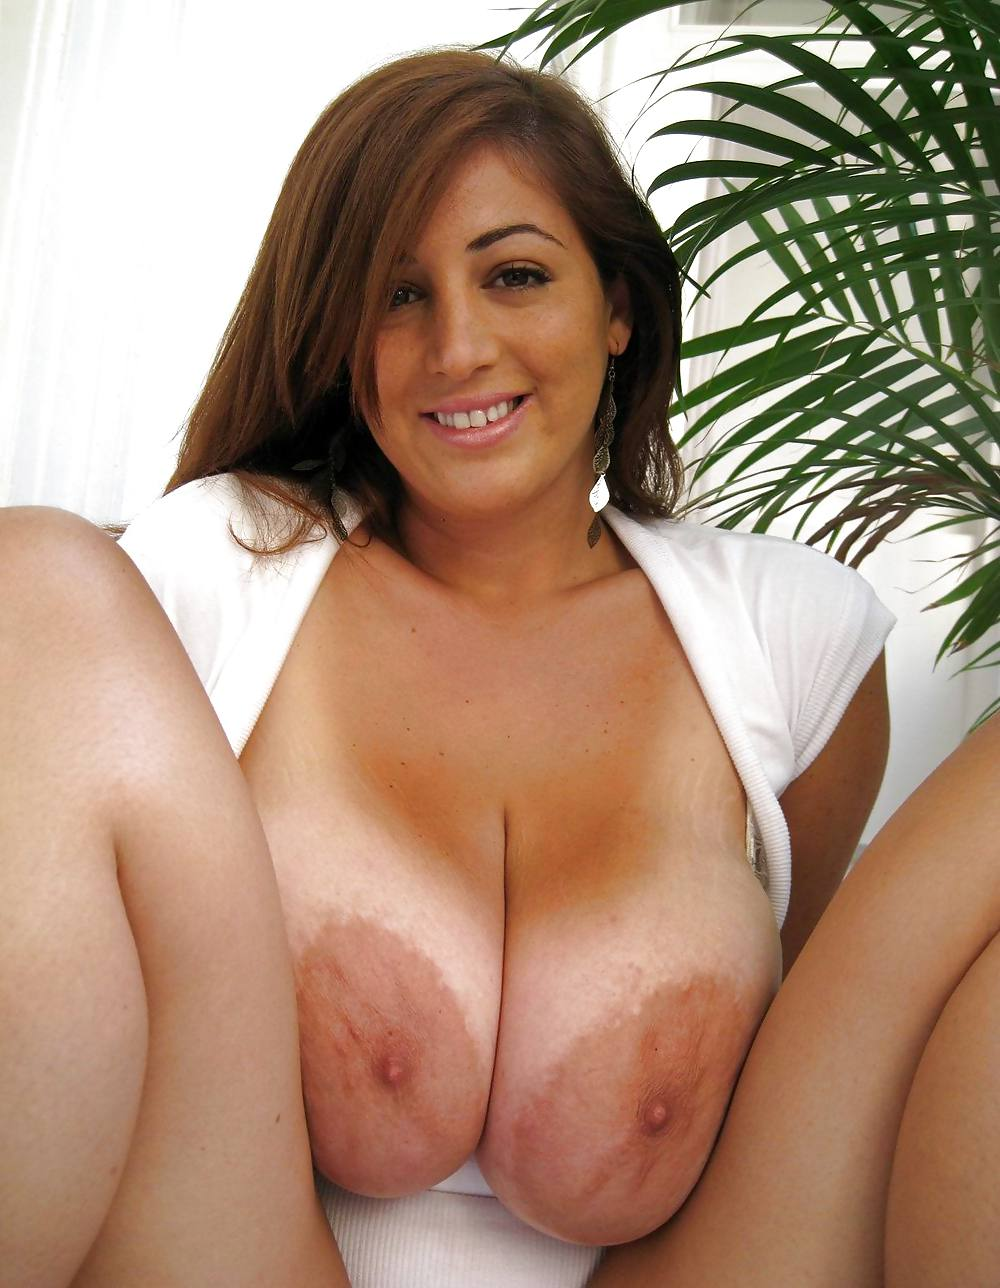 charming threeway swingers sex stories you thanks for the